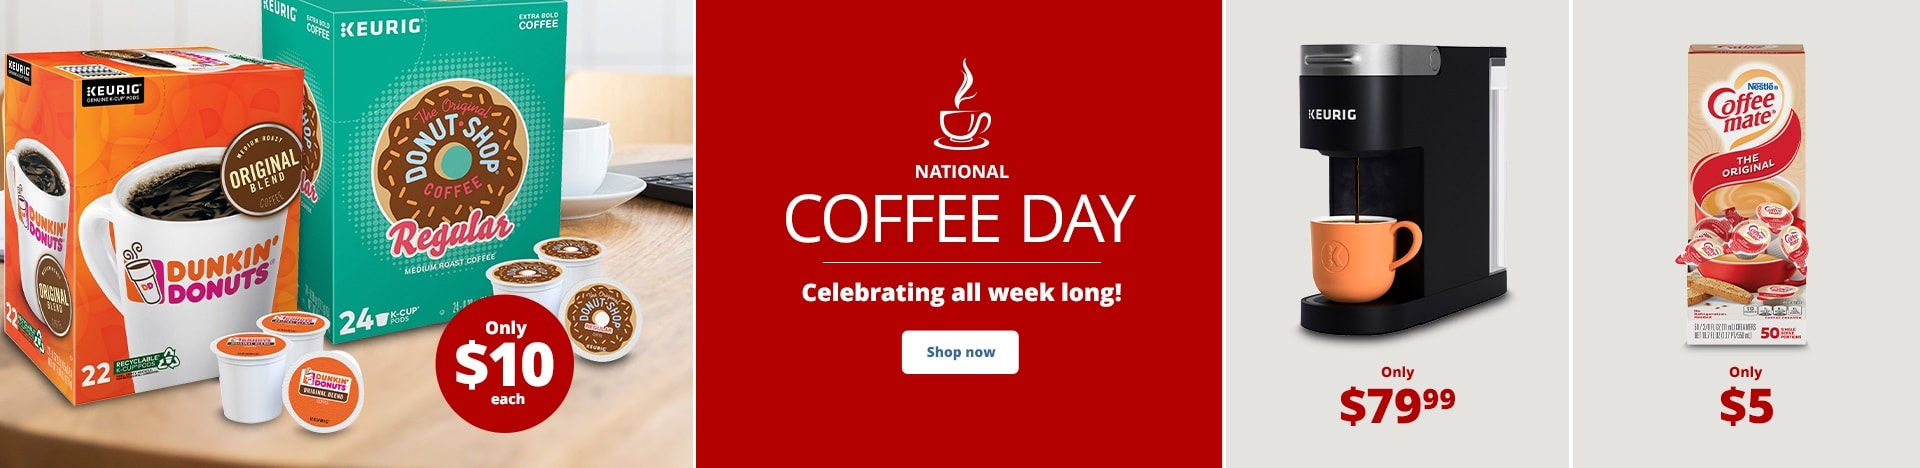 National Coffee Day. Celebrating all week long!